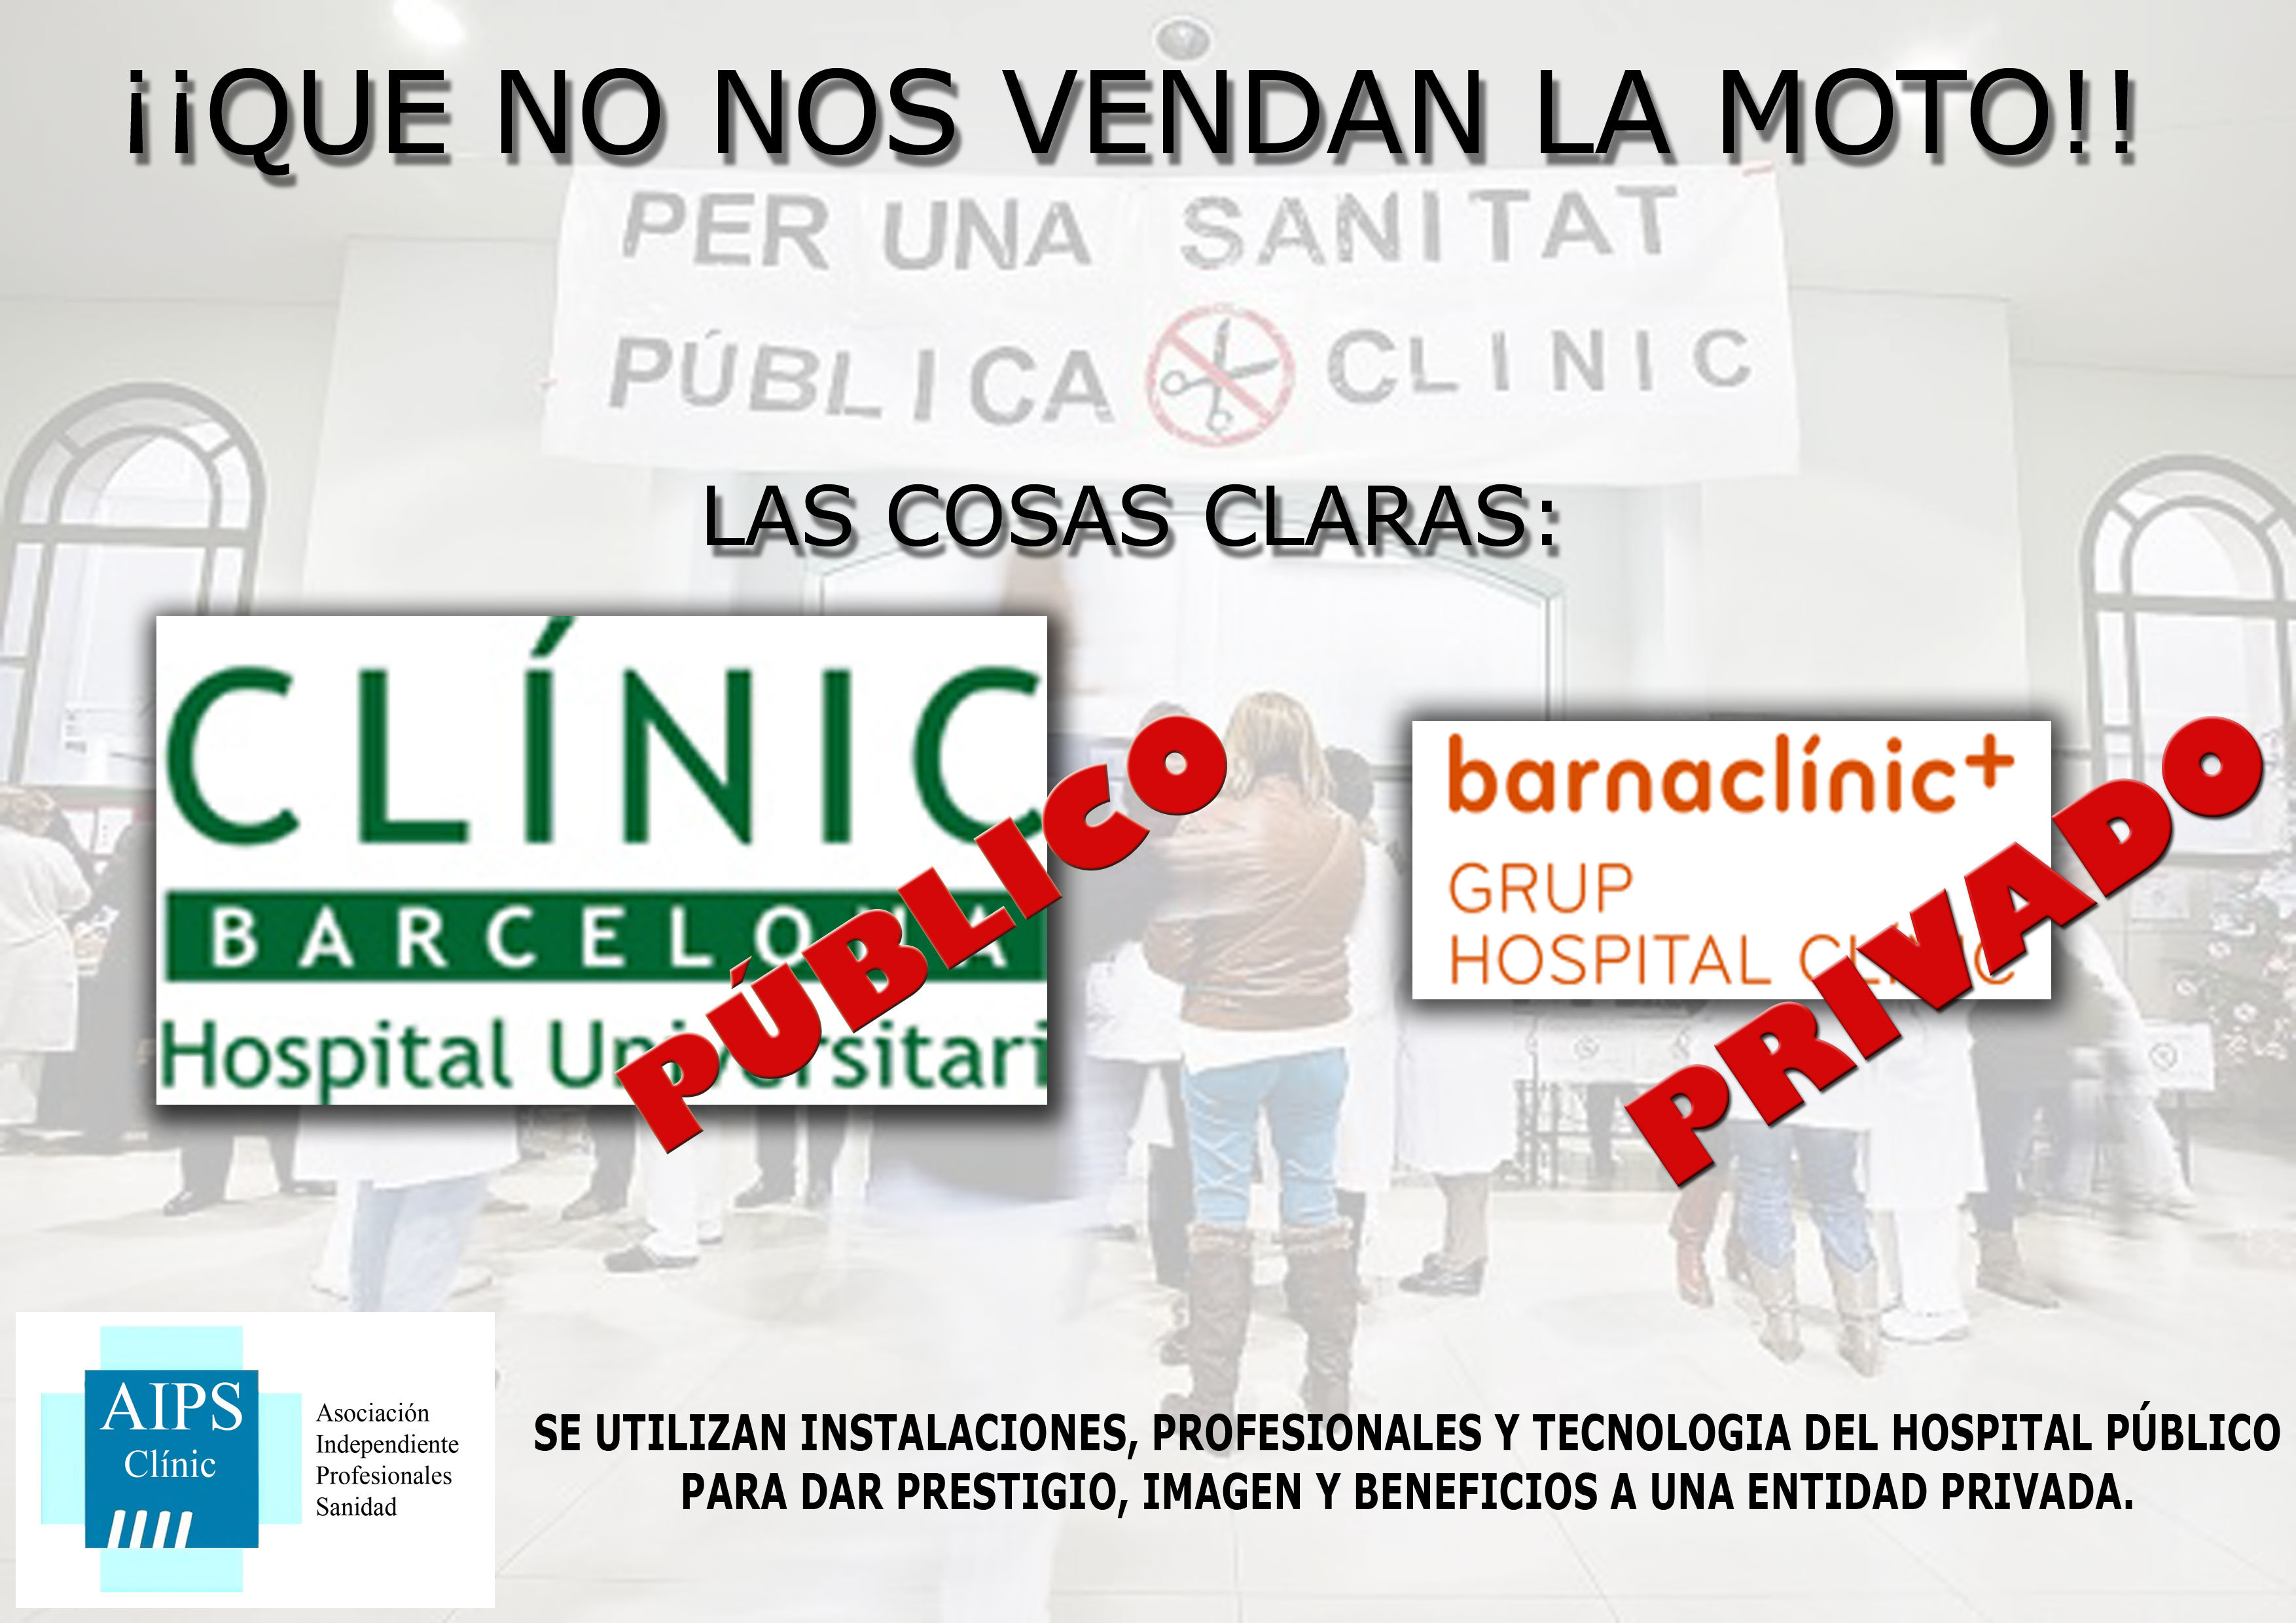 CLINICvsBarnaclinic